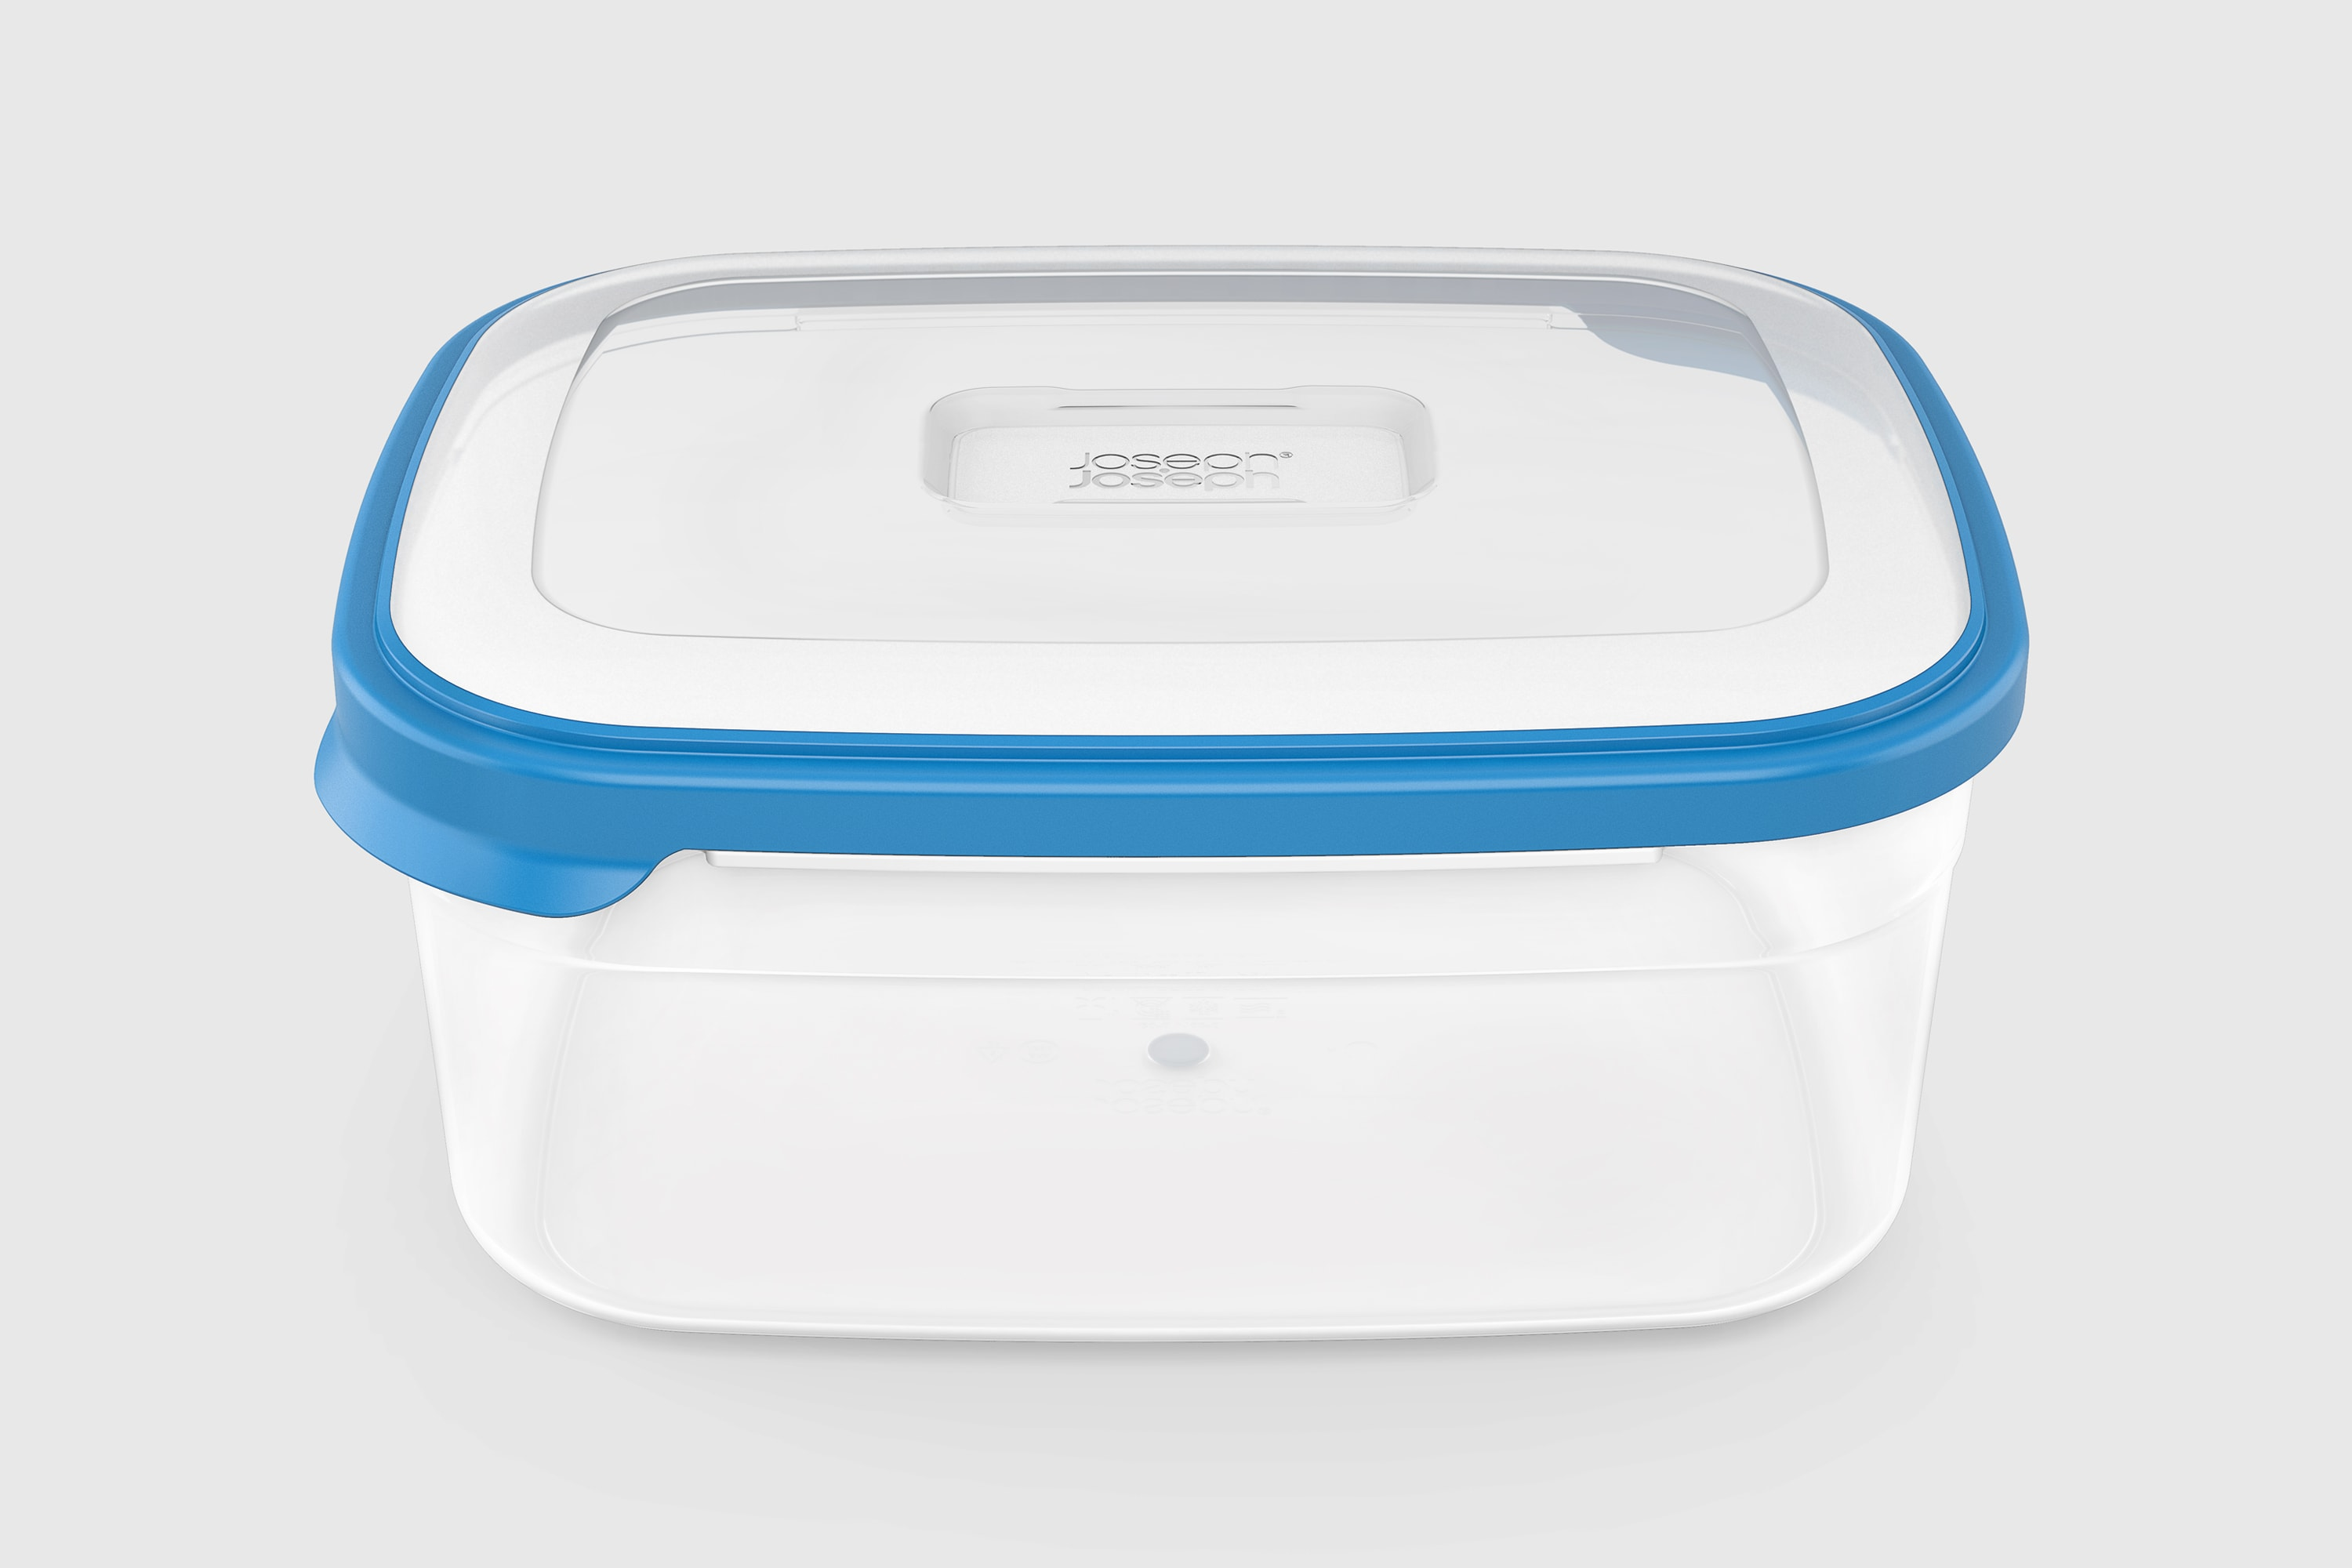 Front view of the JosephJoseph box with a blue lid